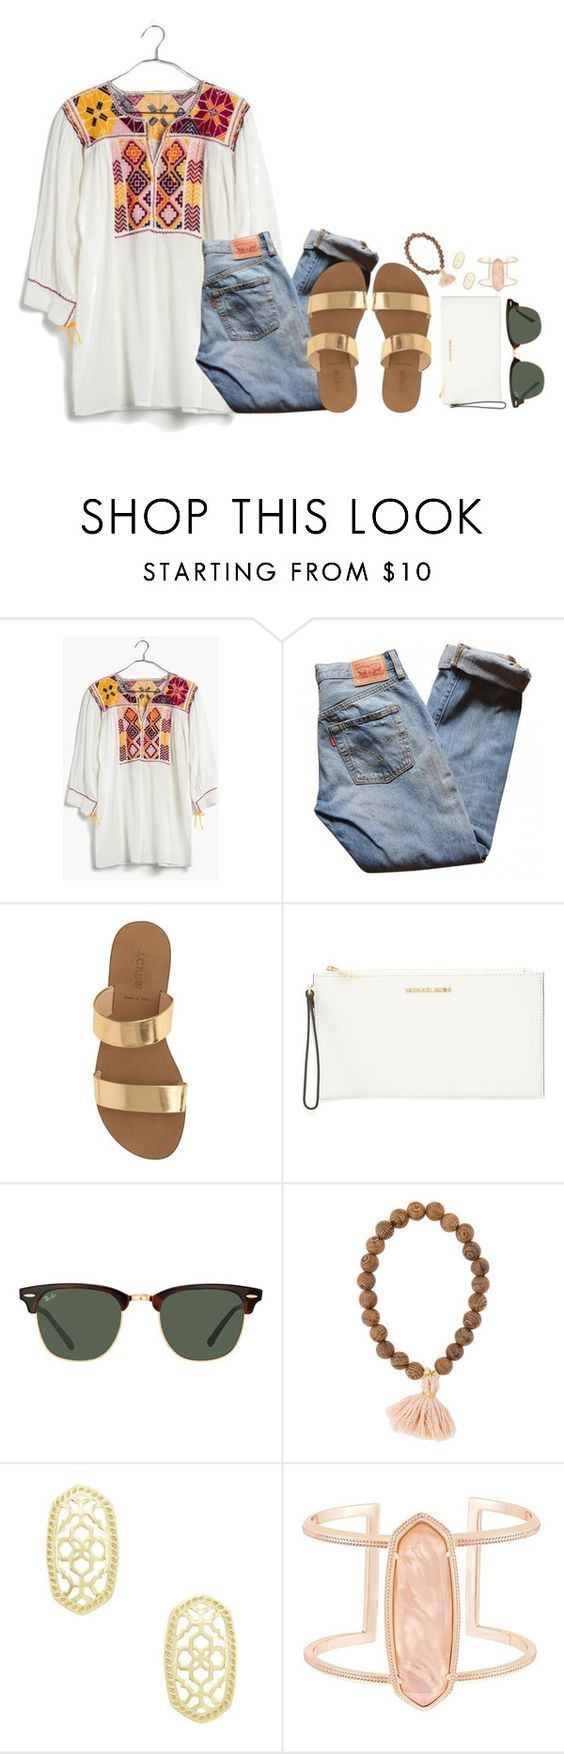 summer by thatprepsterlibby ❤ liked on Polyvore featuring Madewell, Levis, J.Crew, MICHAEL Michael Kors, Ray-Ban and Kendra Scott